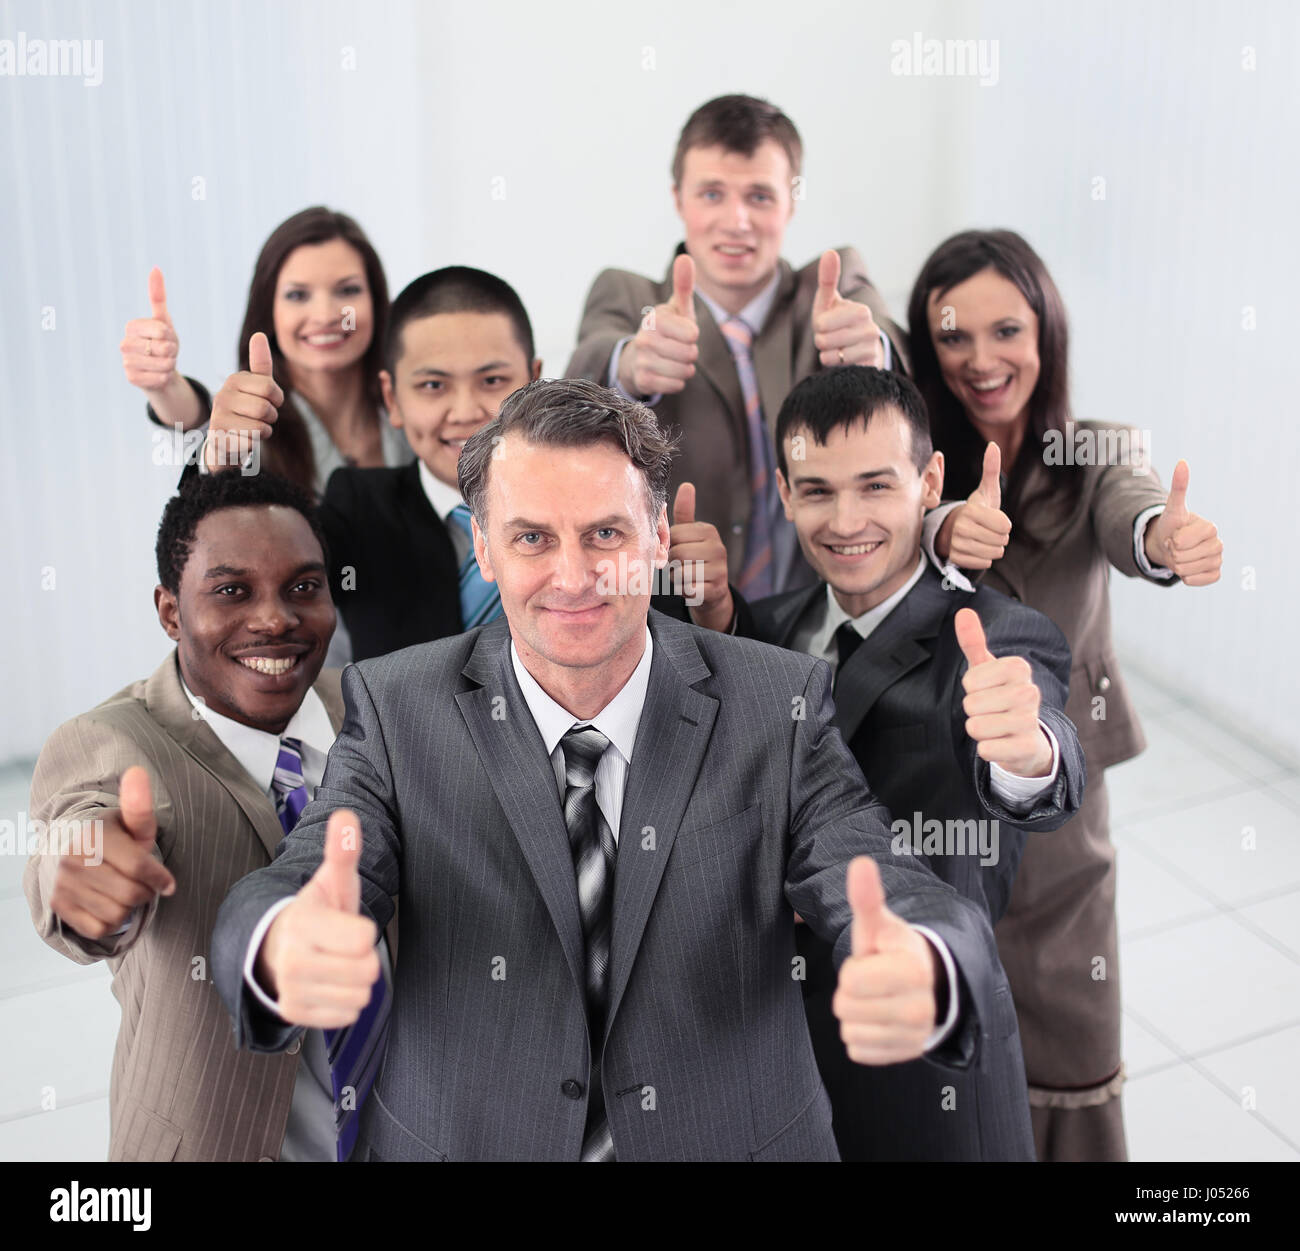 Smiling business people  looking at camera and showing thumbs up - Stock Image